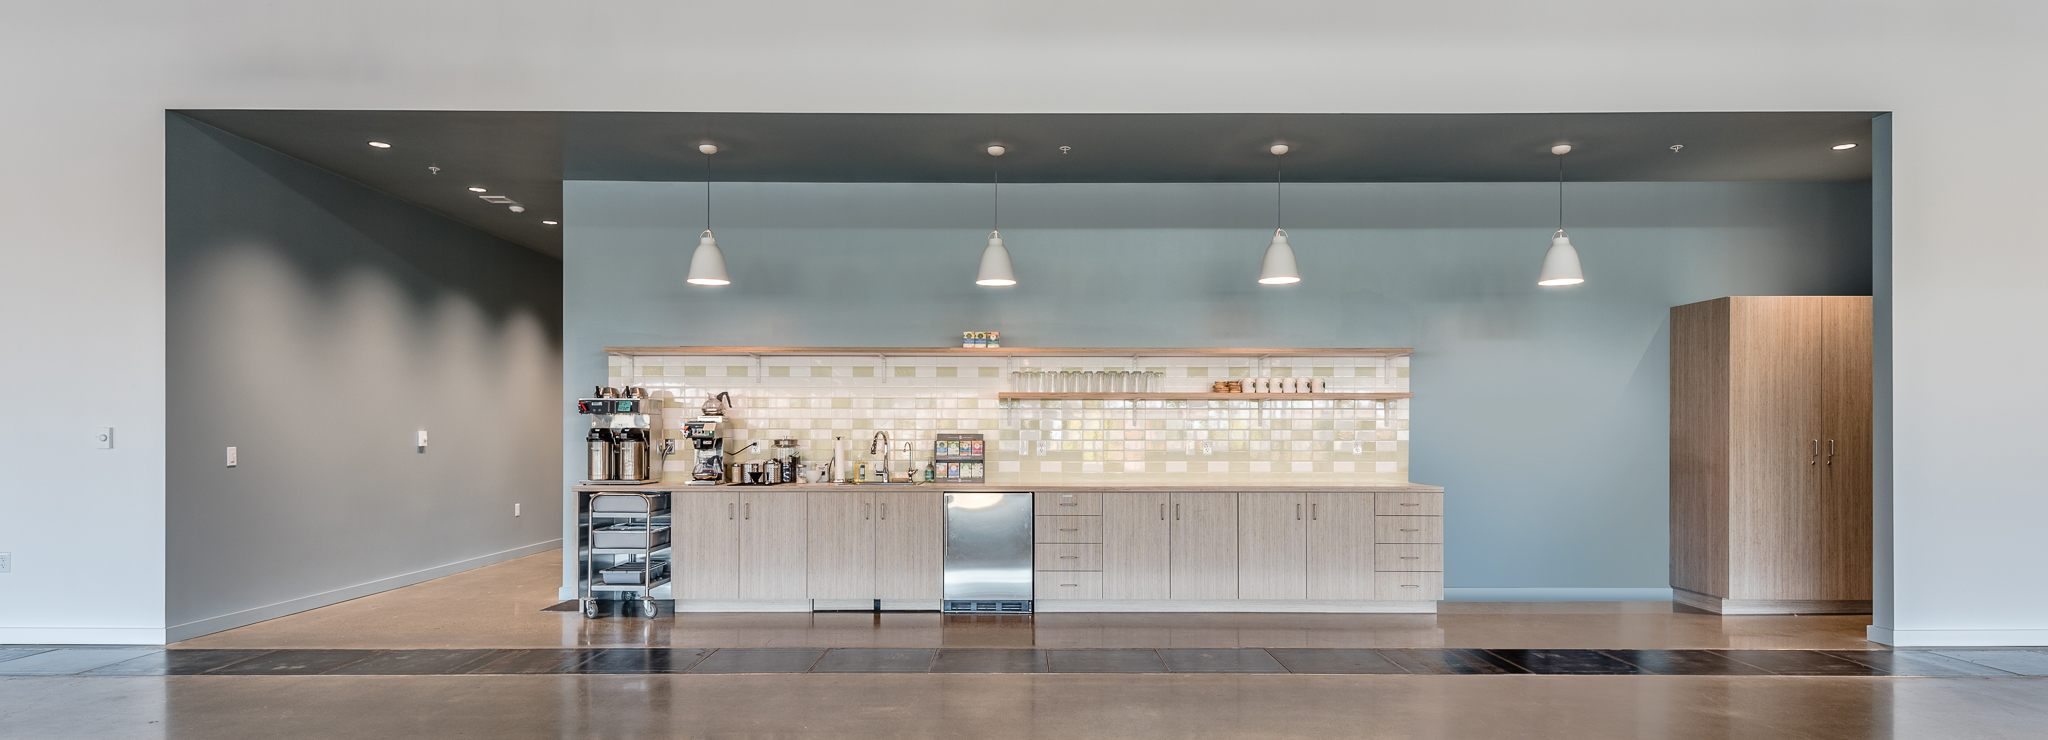 Somo Village 1400 2nd floor